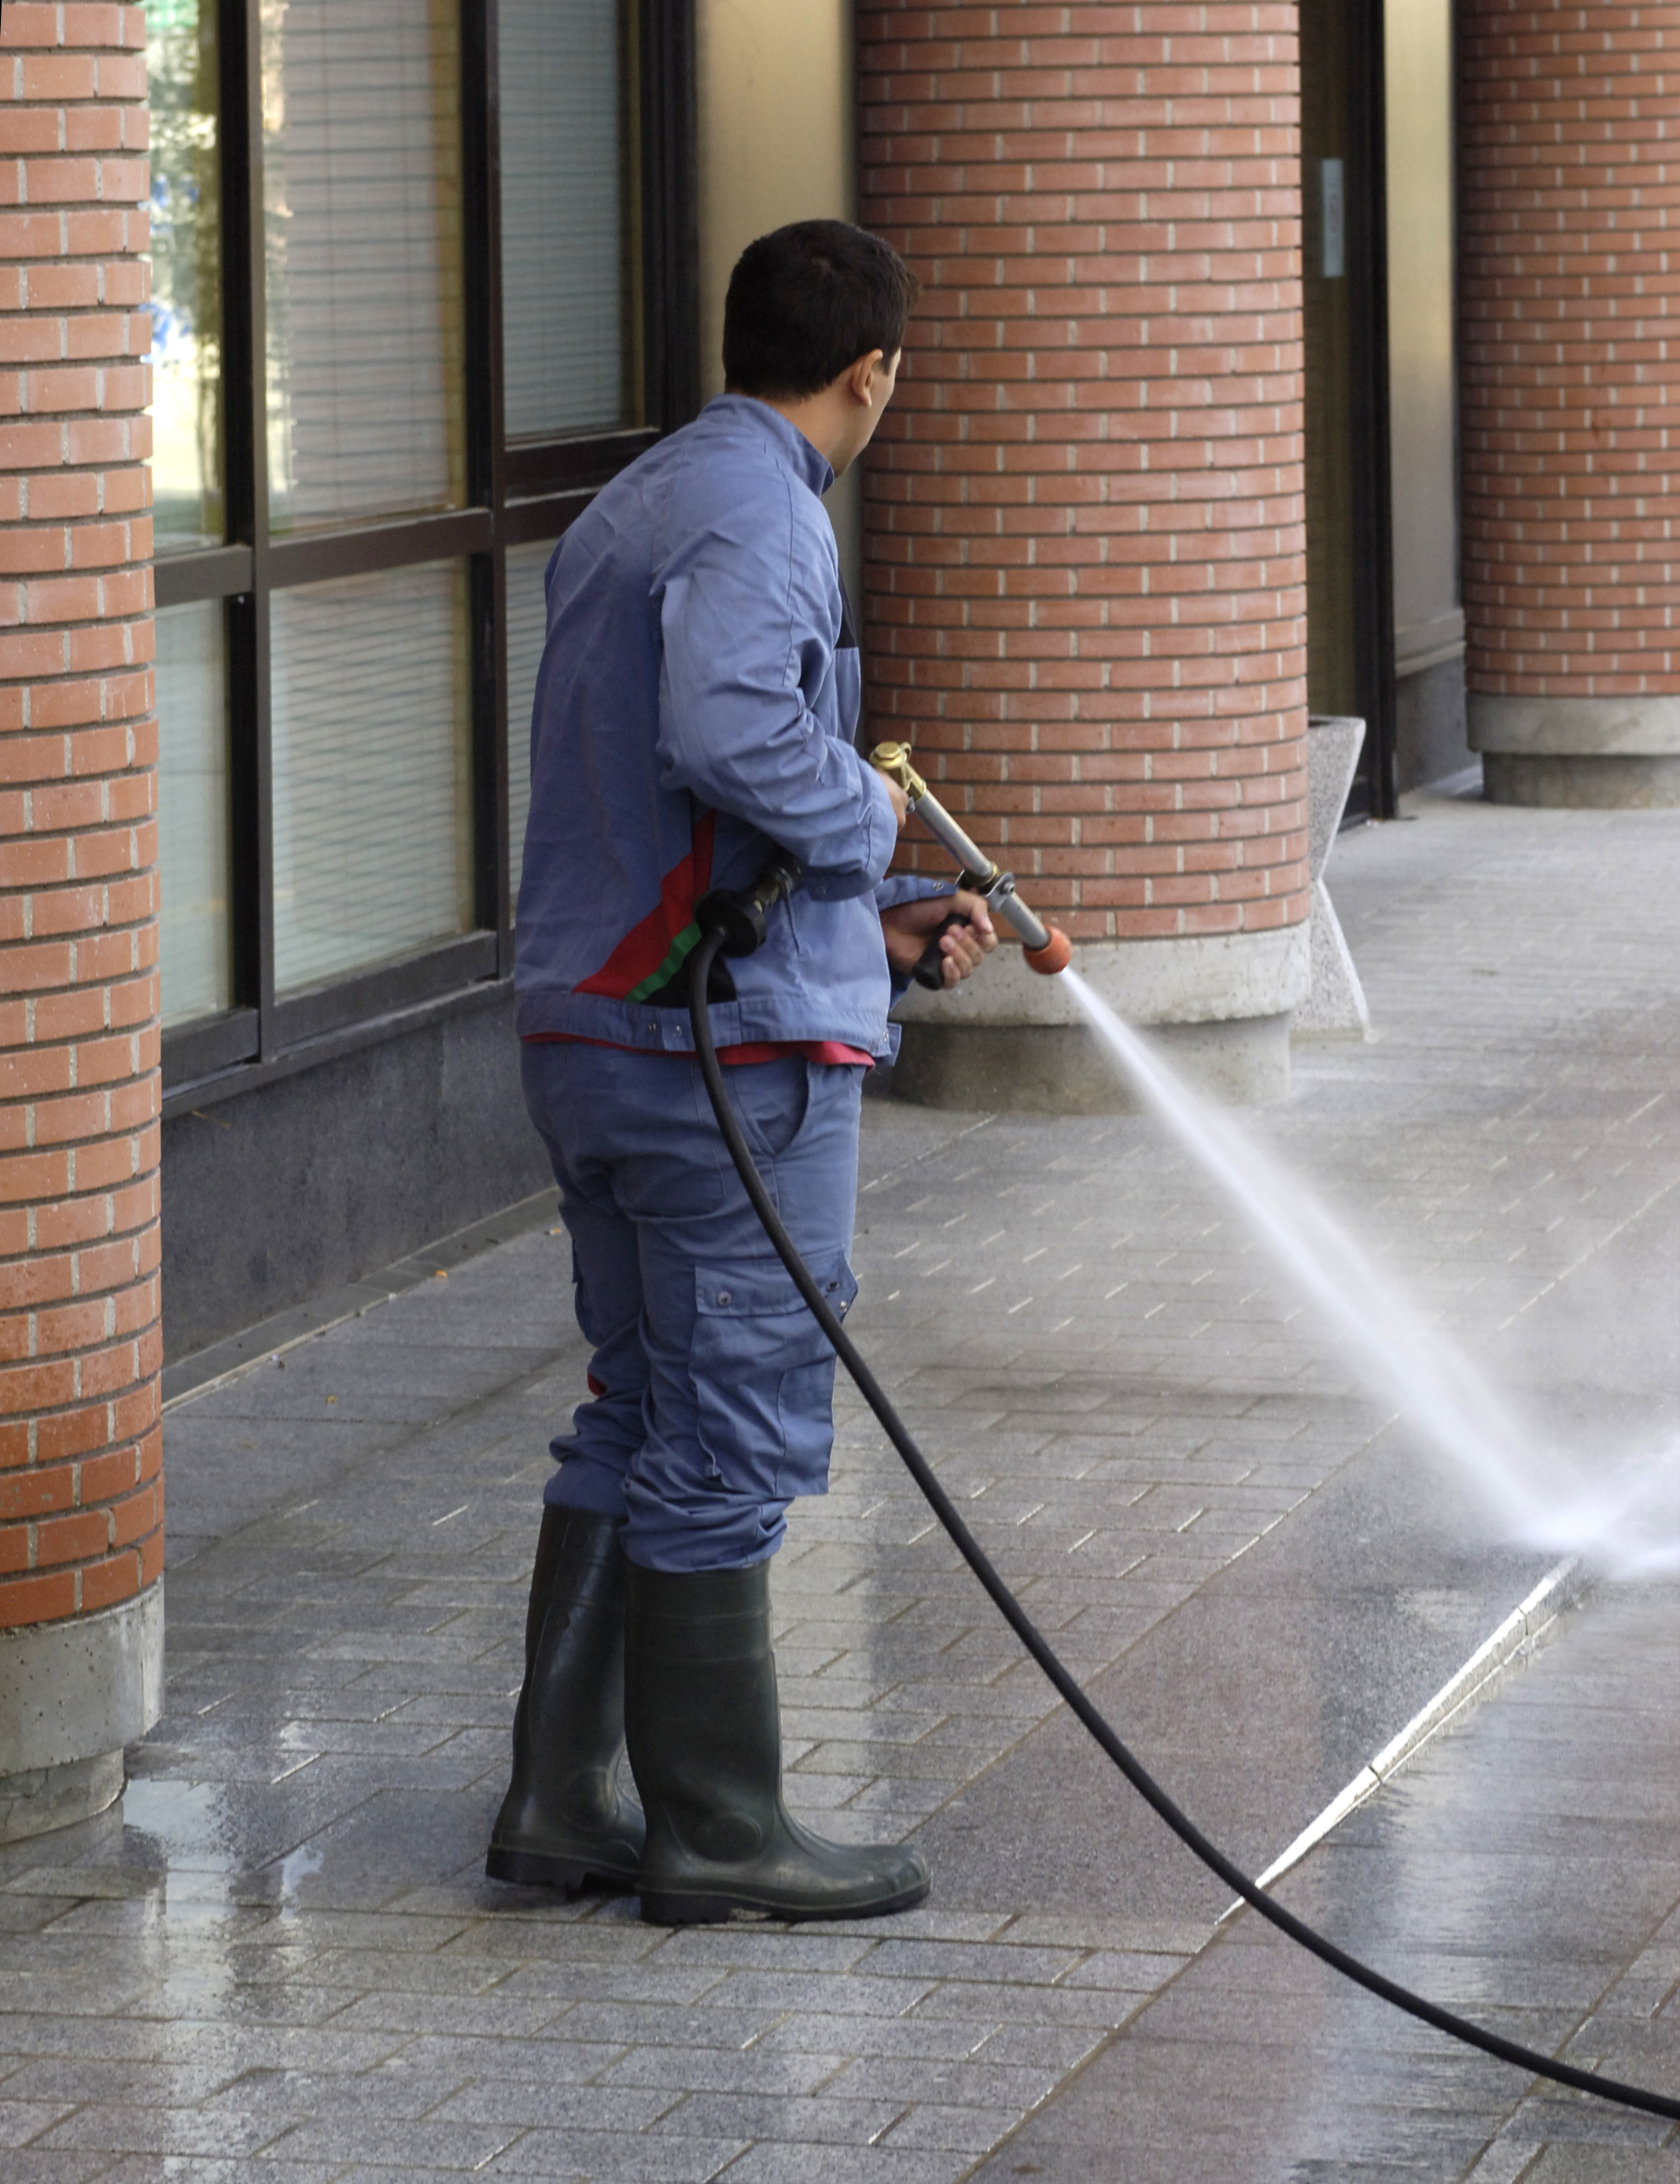 a man is cleaning with an high-pressure cleaner